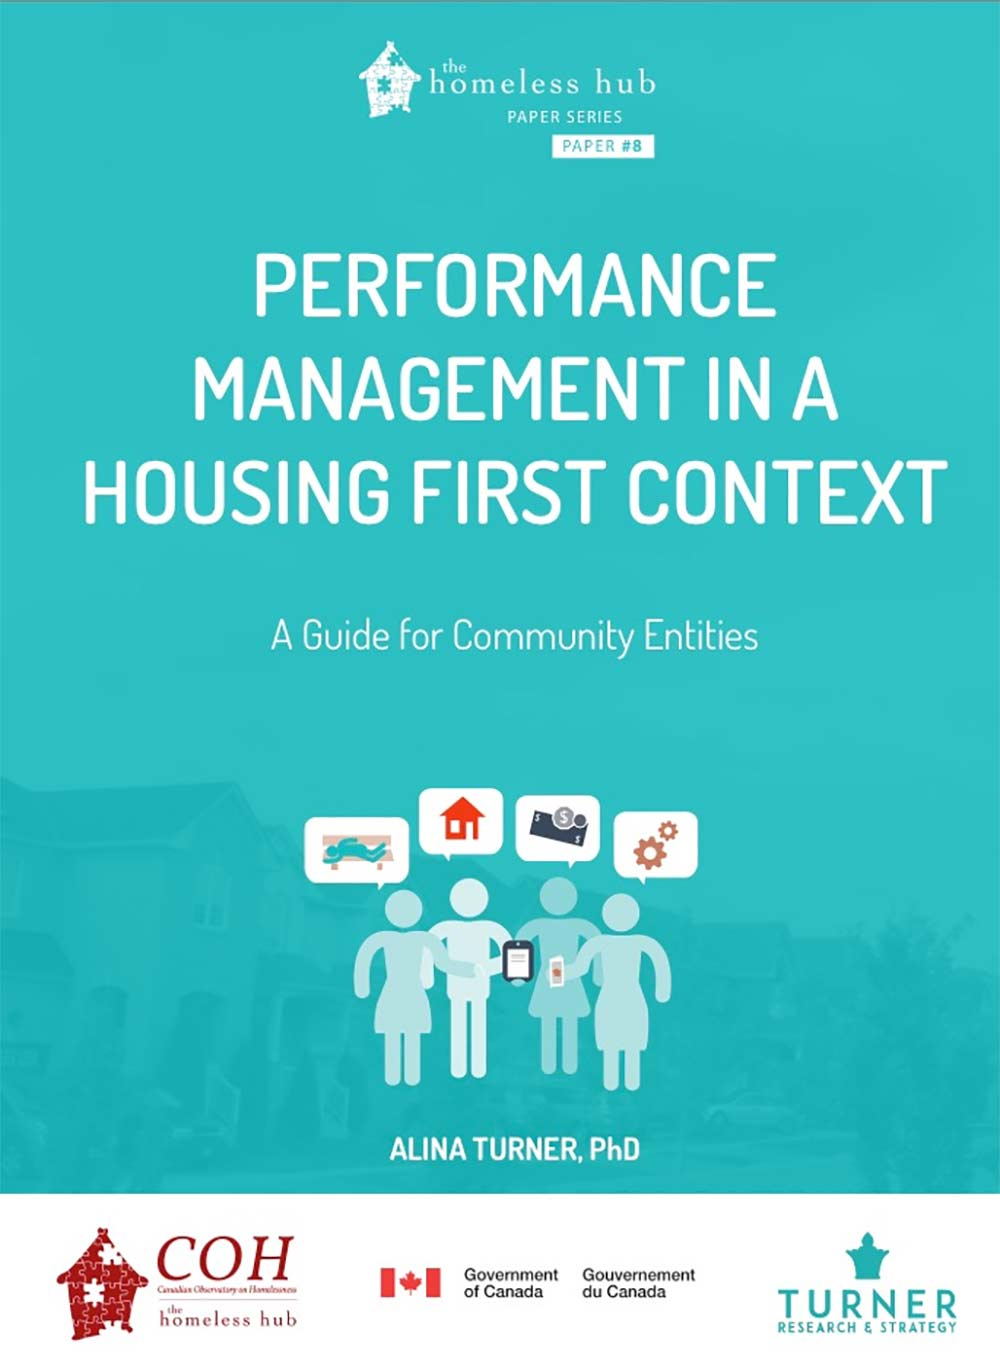 Performance Management Guide - In response to the Homelessness Partnering Strategy's request, the following comprehensive guide to performance management in a Housing First context was developed. It is targeted towards funders, however, paints a fulsome picture of how system planning, service quality, funding allocation, and strategic planning can work to advance the goals of ending homelessness across stakeholders.Download Report